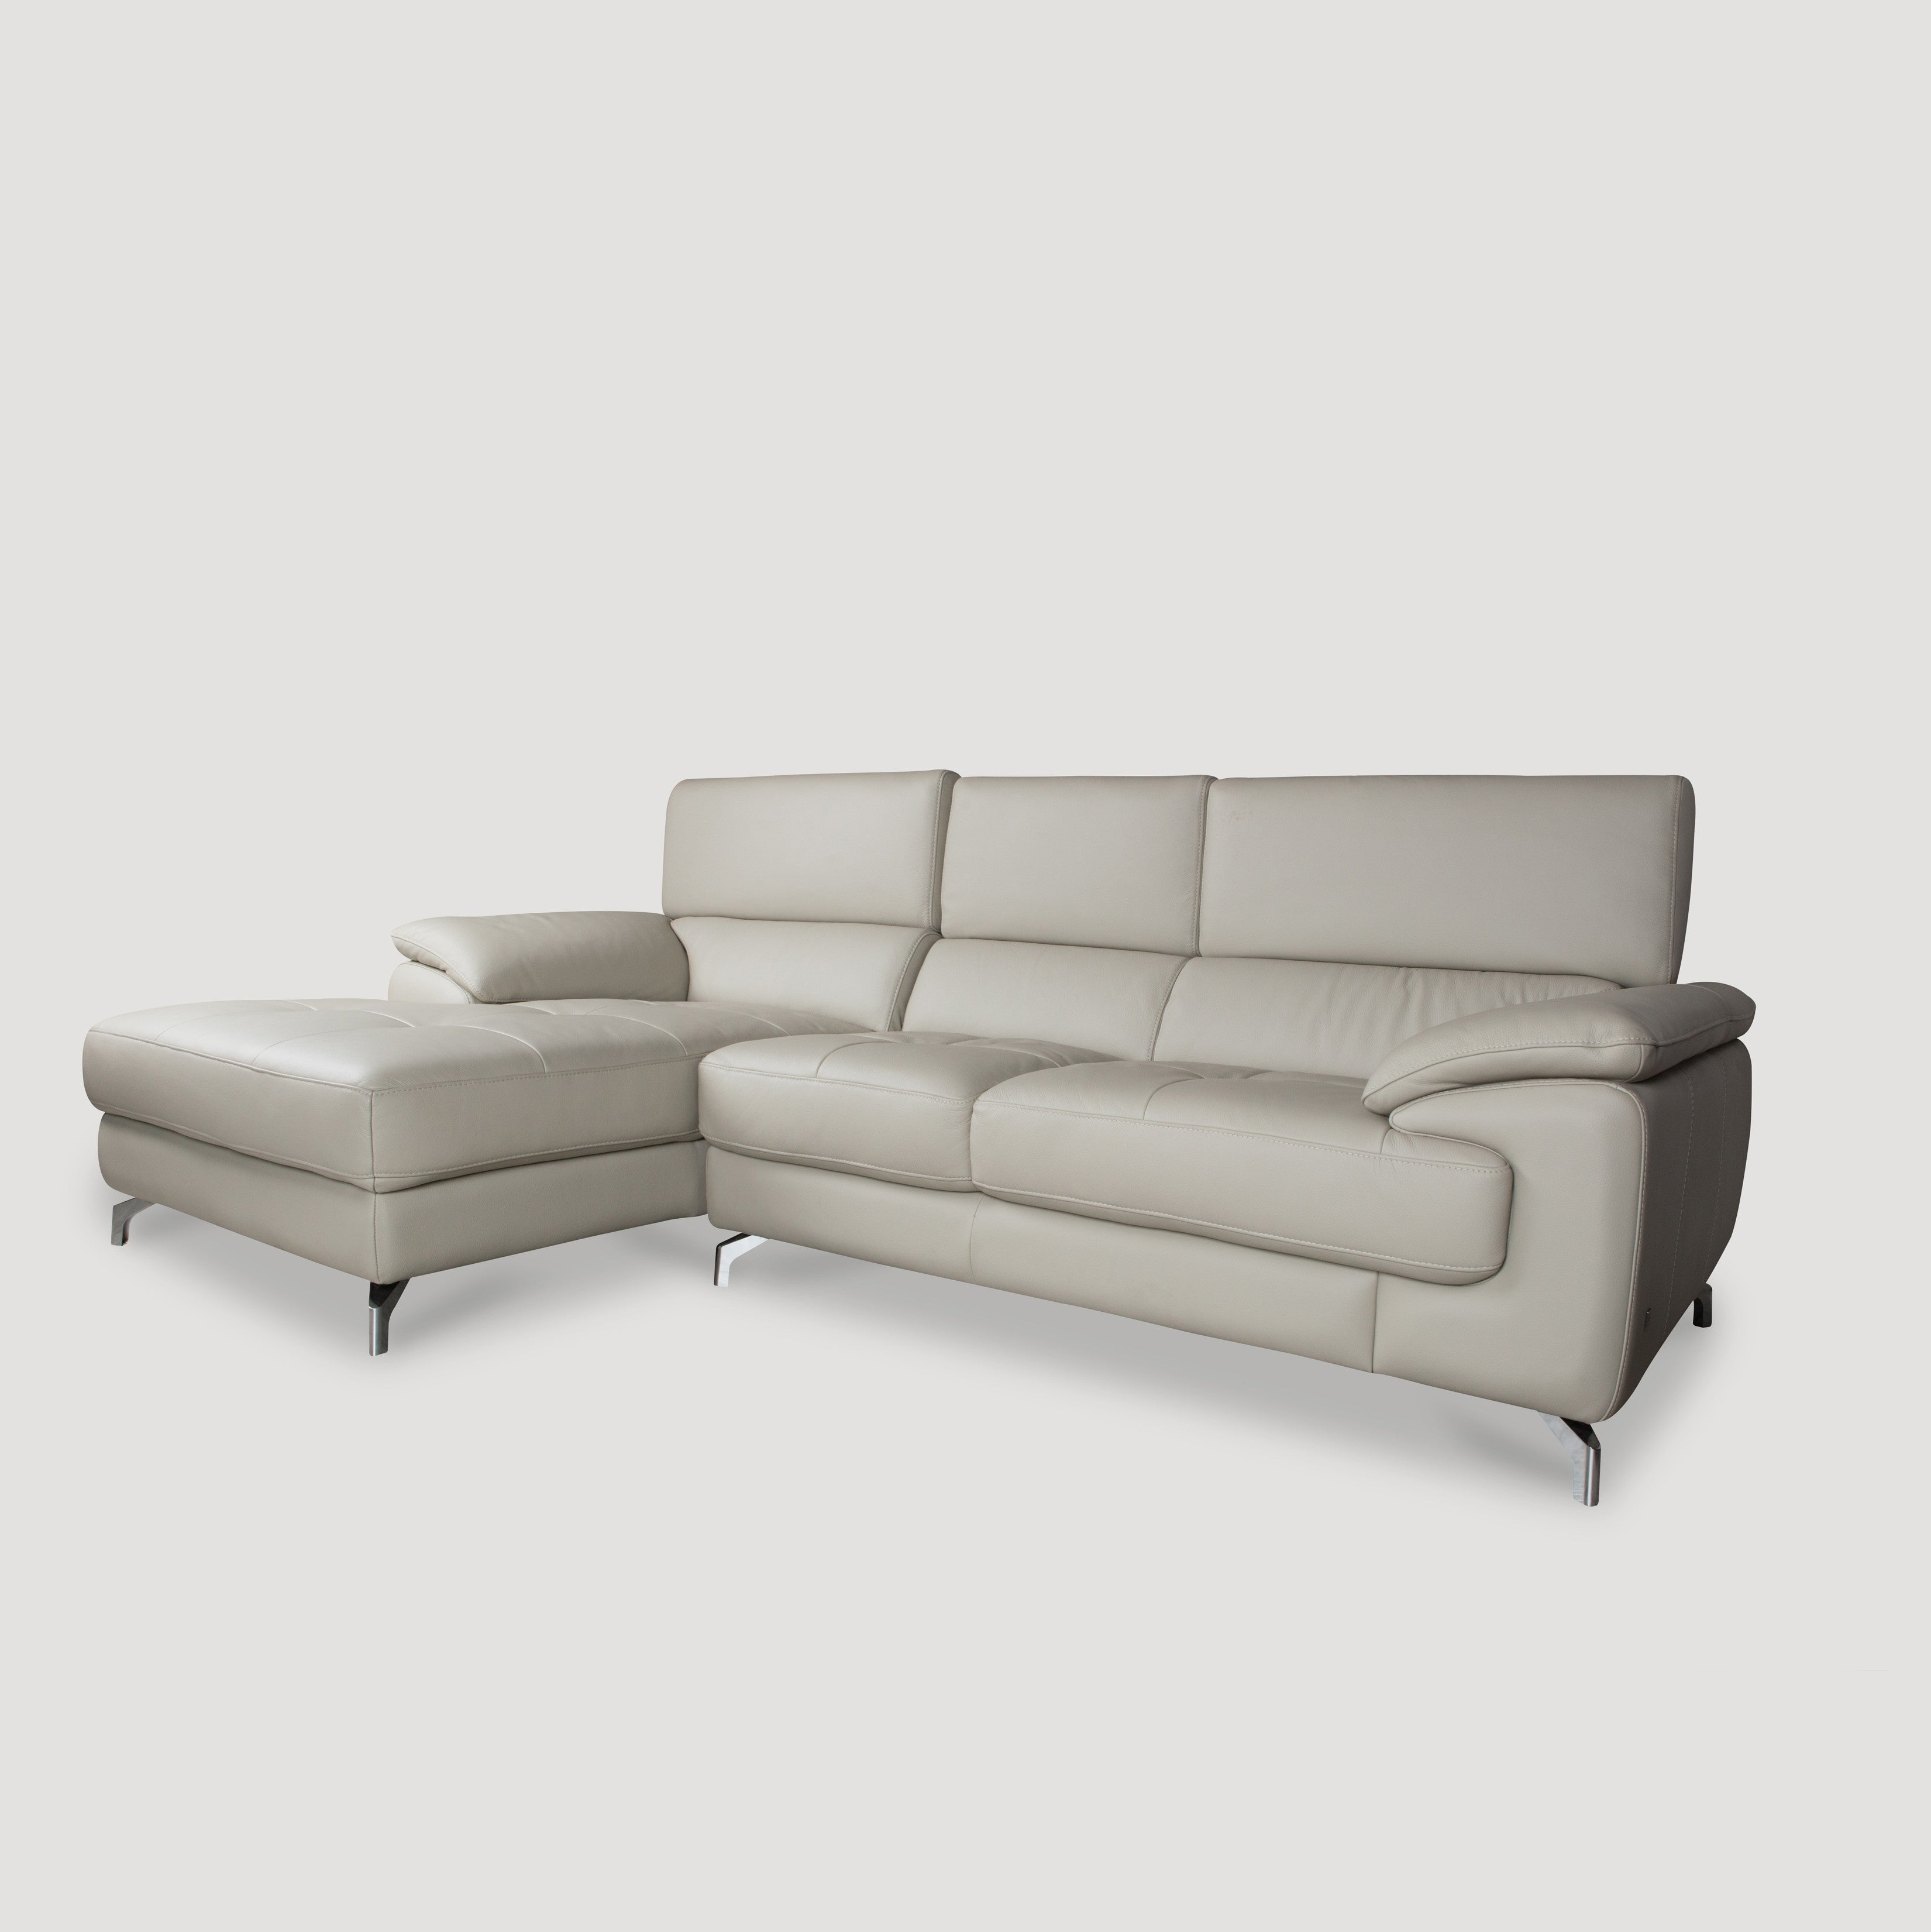 Bolton Modular Left Chaise Lounge